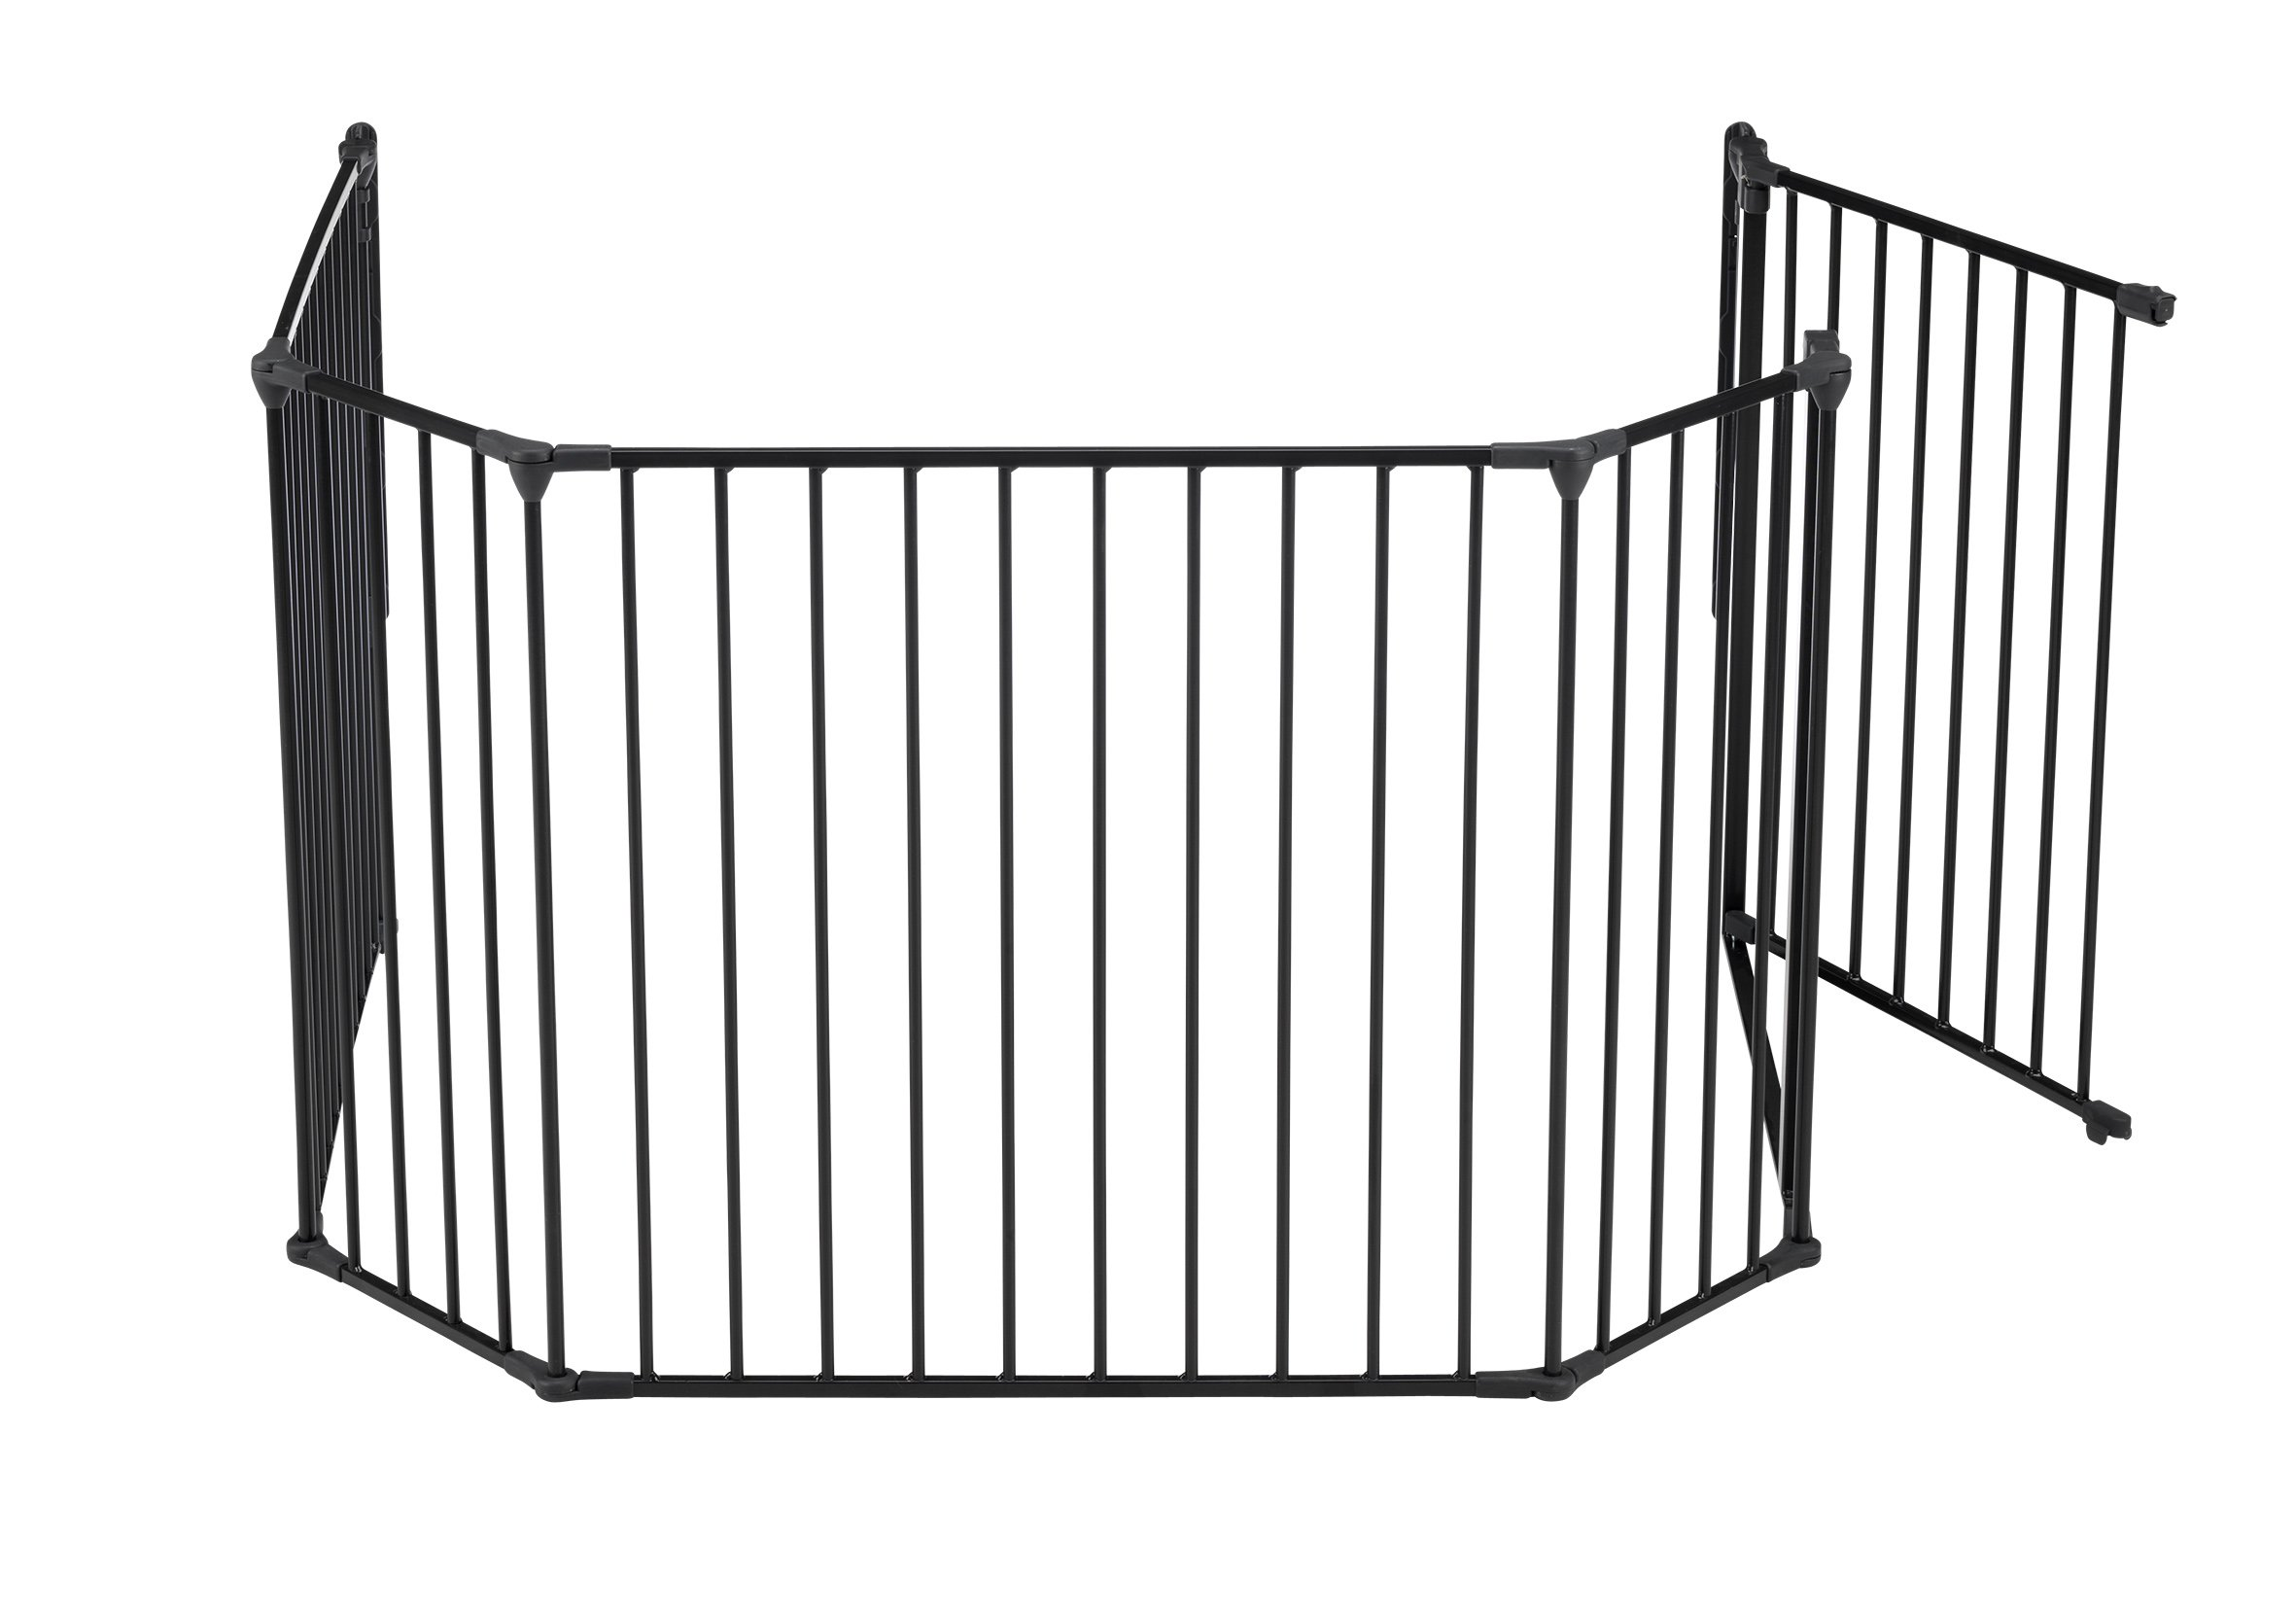 BabyDan Hearth Gate/Room Divider (Extra Large, 90-278cm, Anthracite)  Only configure system fulfilling newest european safety standard Multi purpose hearth gate and room divider There are 5 panels in total, 1 larger 72cm gate section panel, 2 larger 72cm panels and 2 smaller 33cm side panels. For shipping purposes, the 2 smaller side panels are connected by the interlocking pole 10